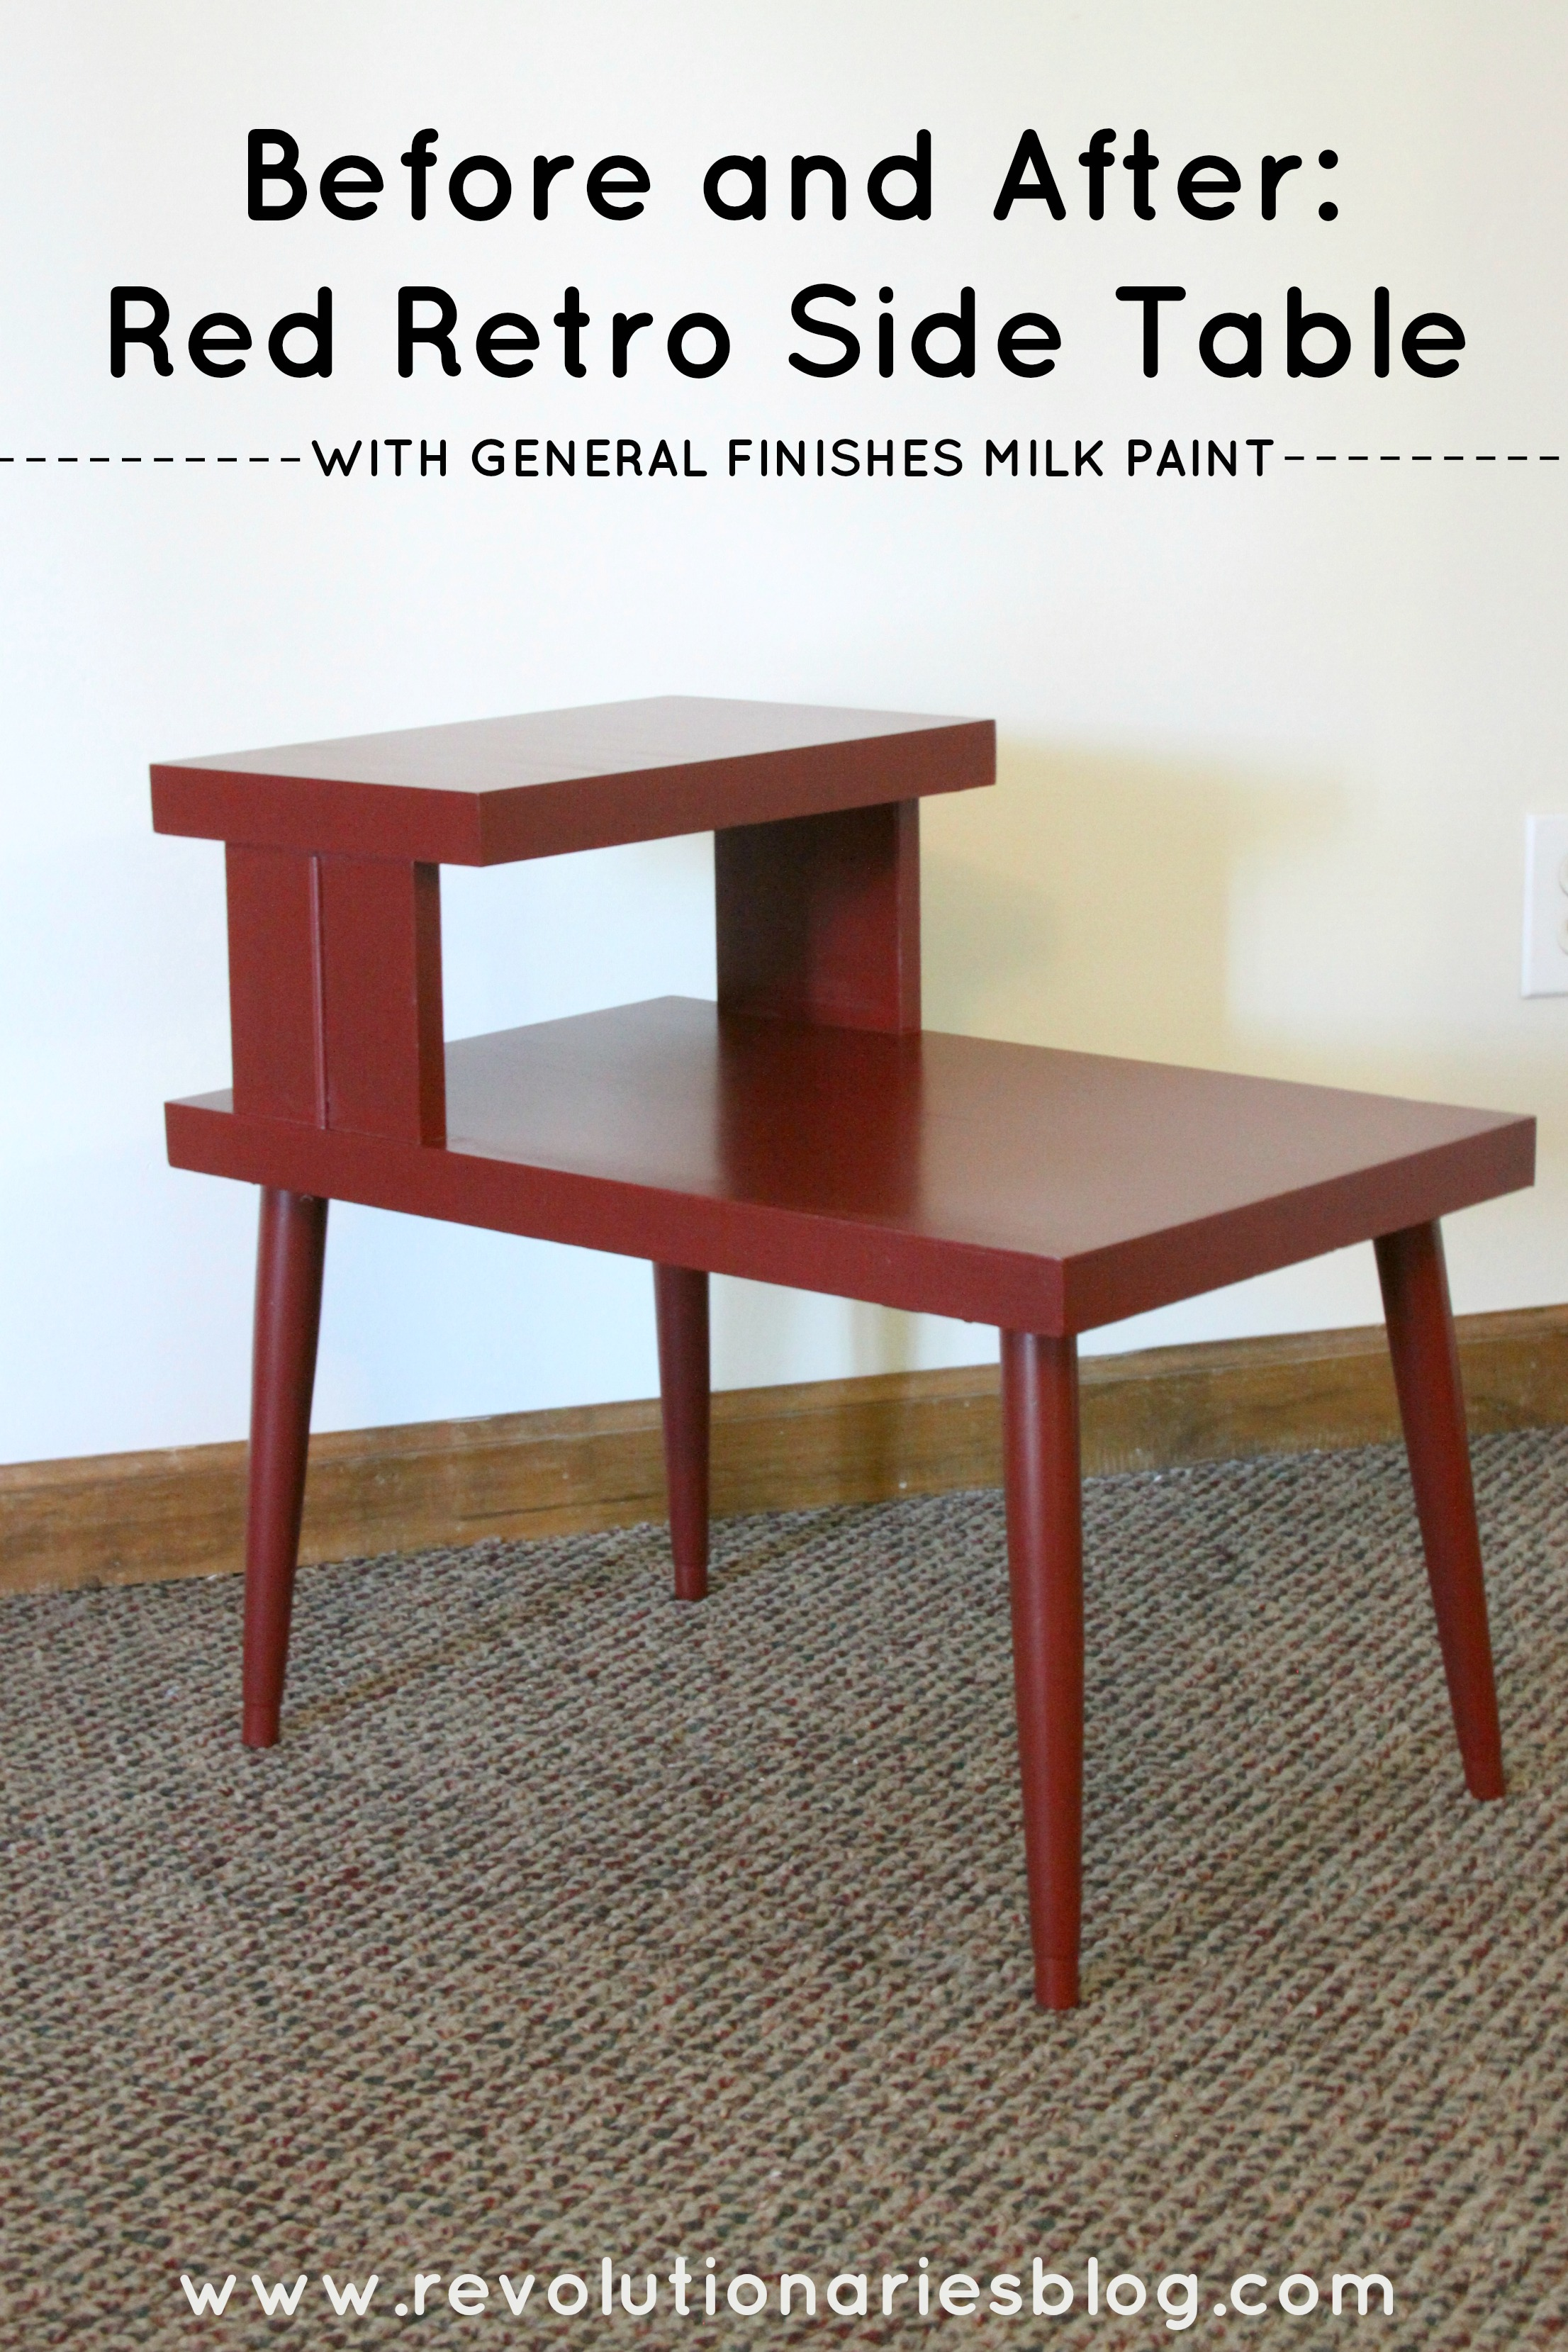 red-retro-side-table-with-general-finishes-milk-paint-after.jpg